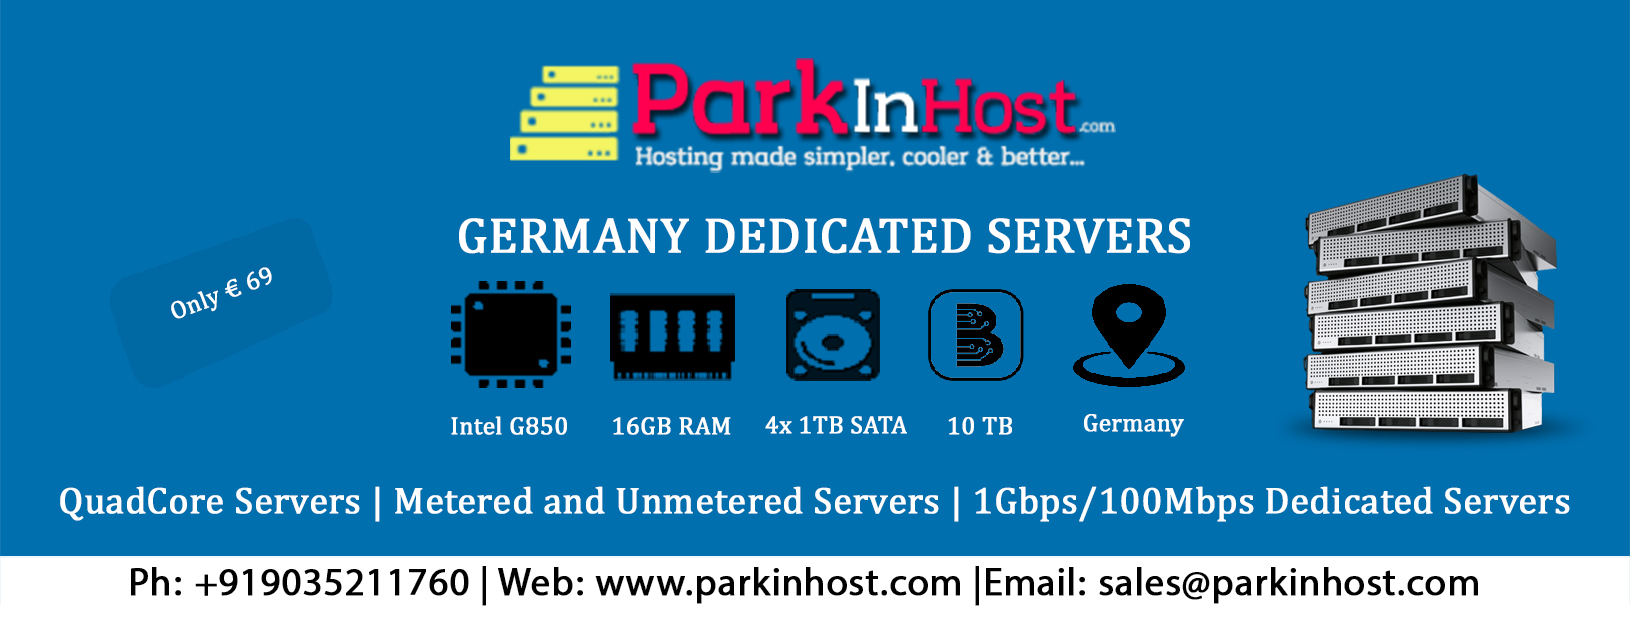 Unmetered Germany Dedicated Servers Parkinhost